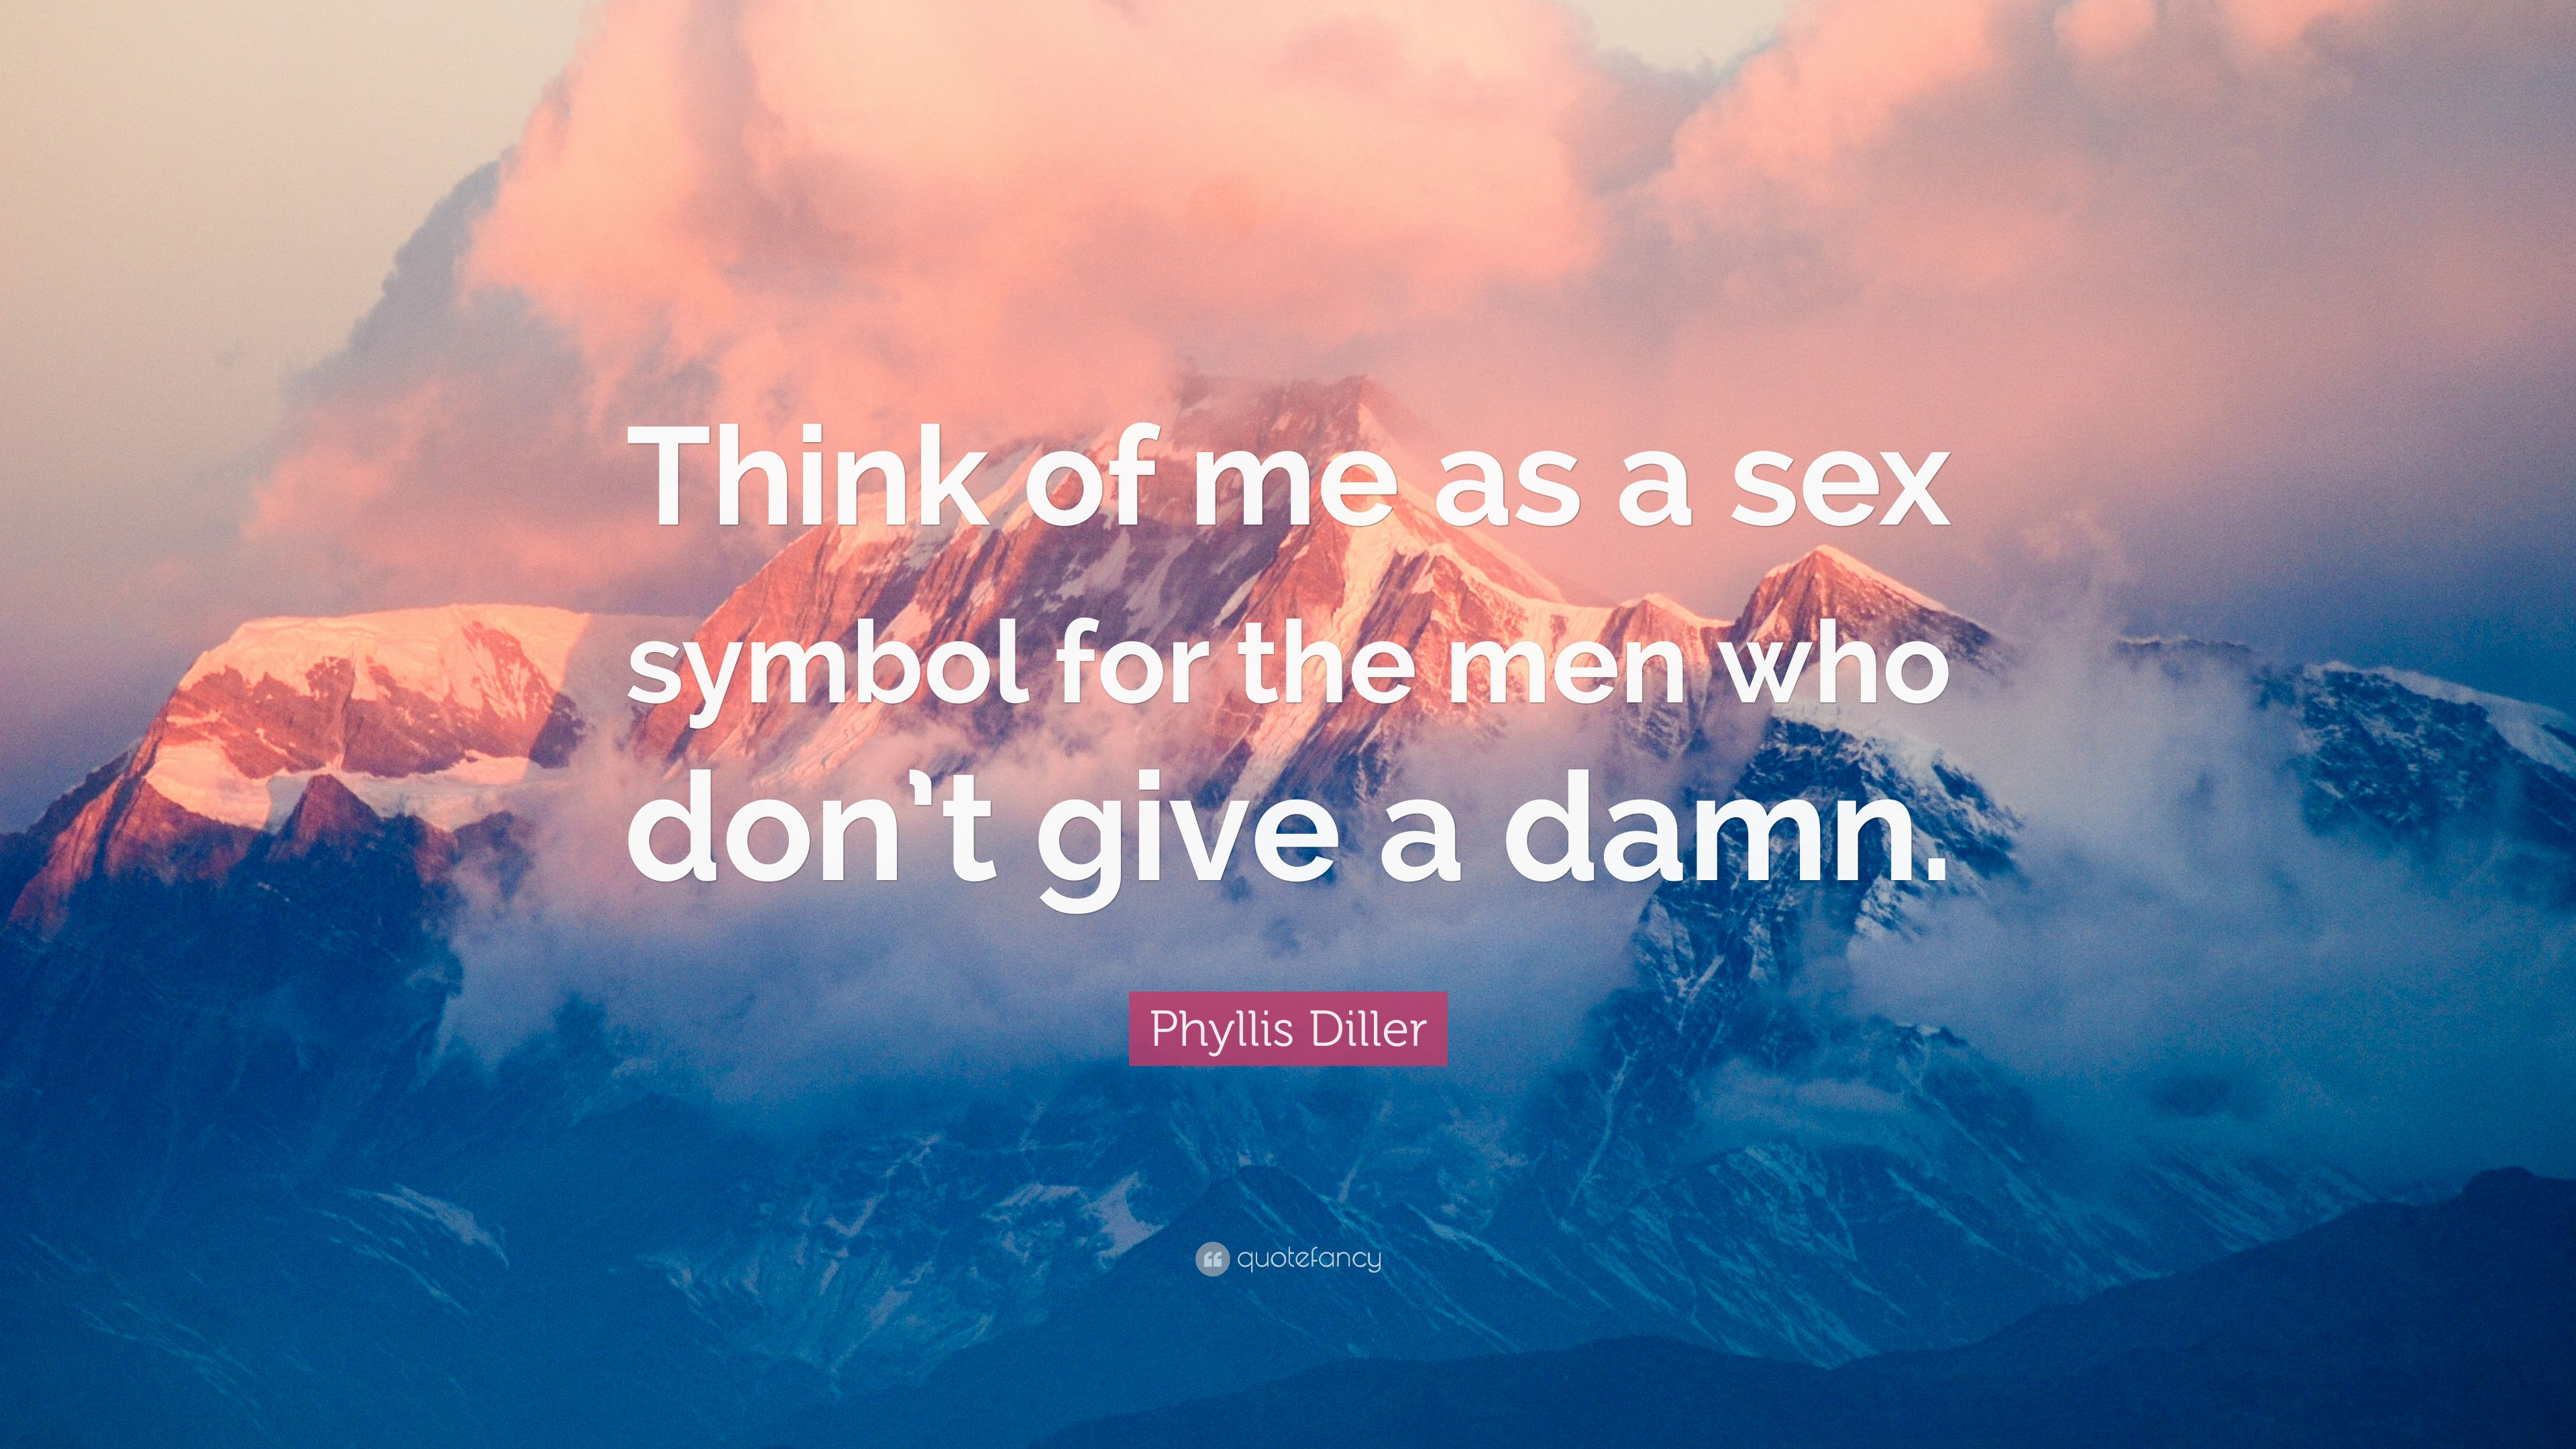 Phyllis diller quote think of me as a sex symbol for the men who phyllis diller quote think of me as a sex symbol for the men who biocorpaavc